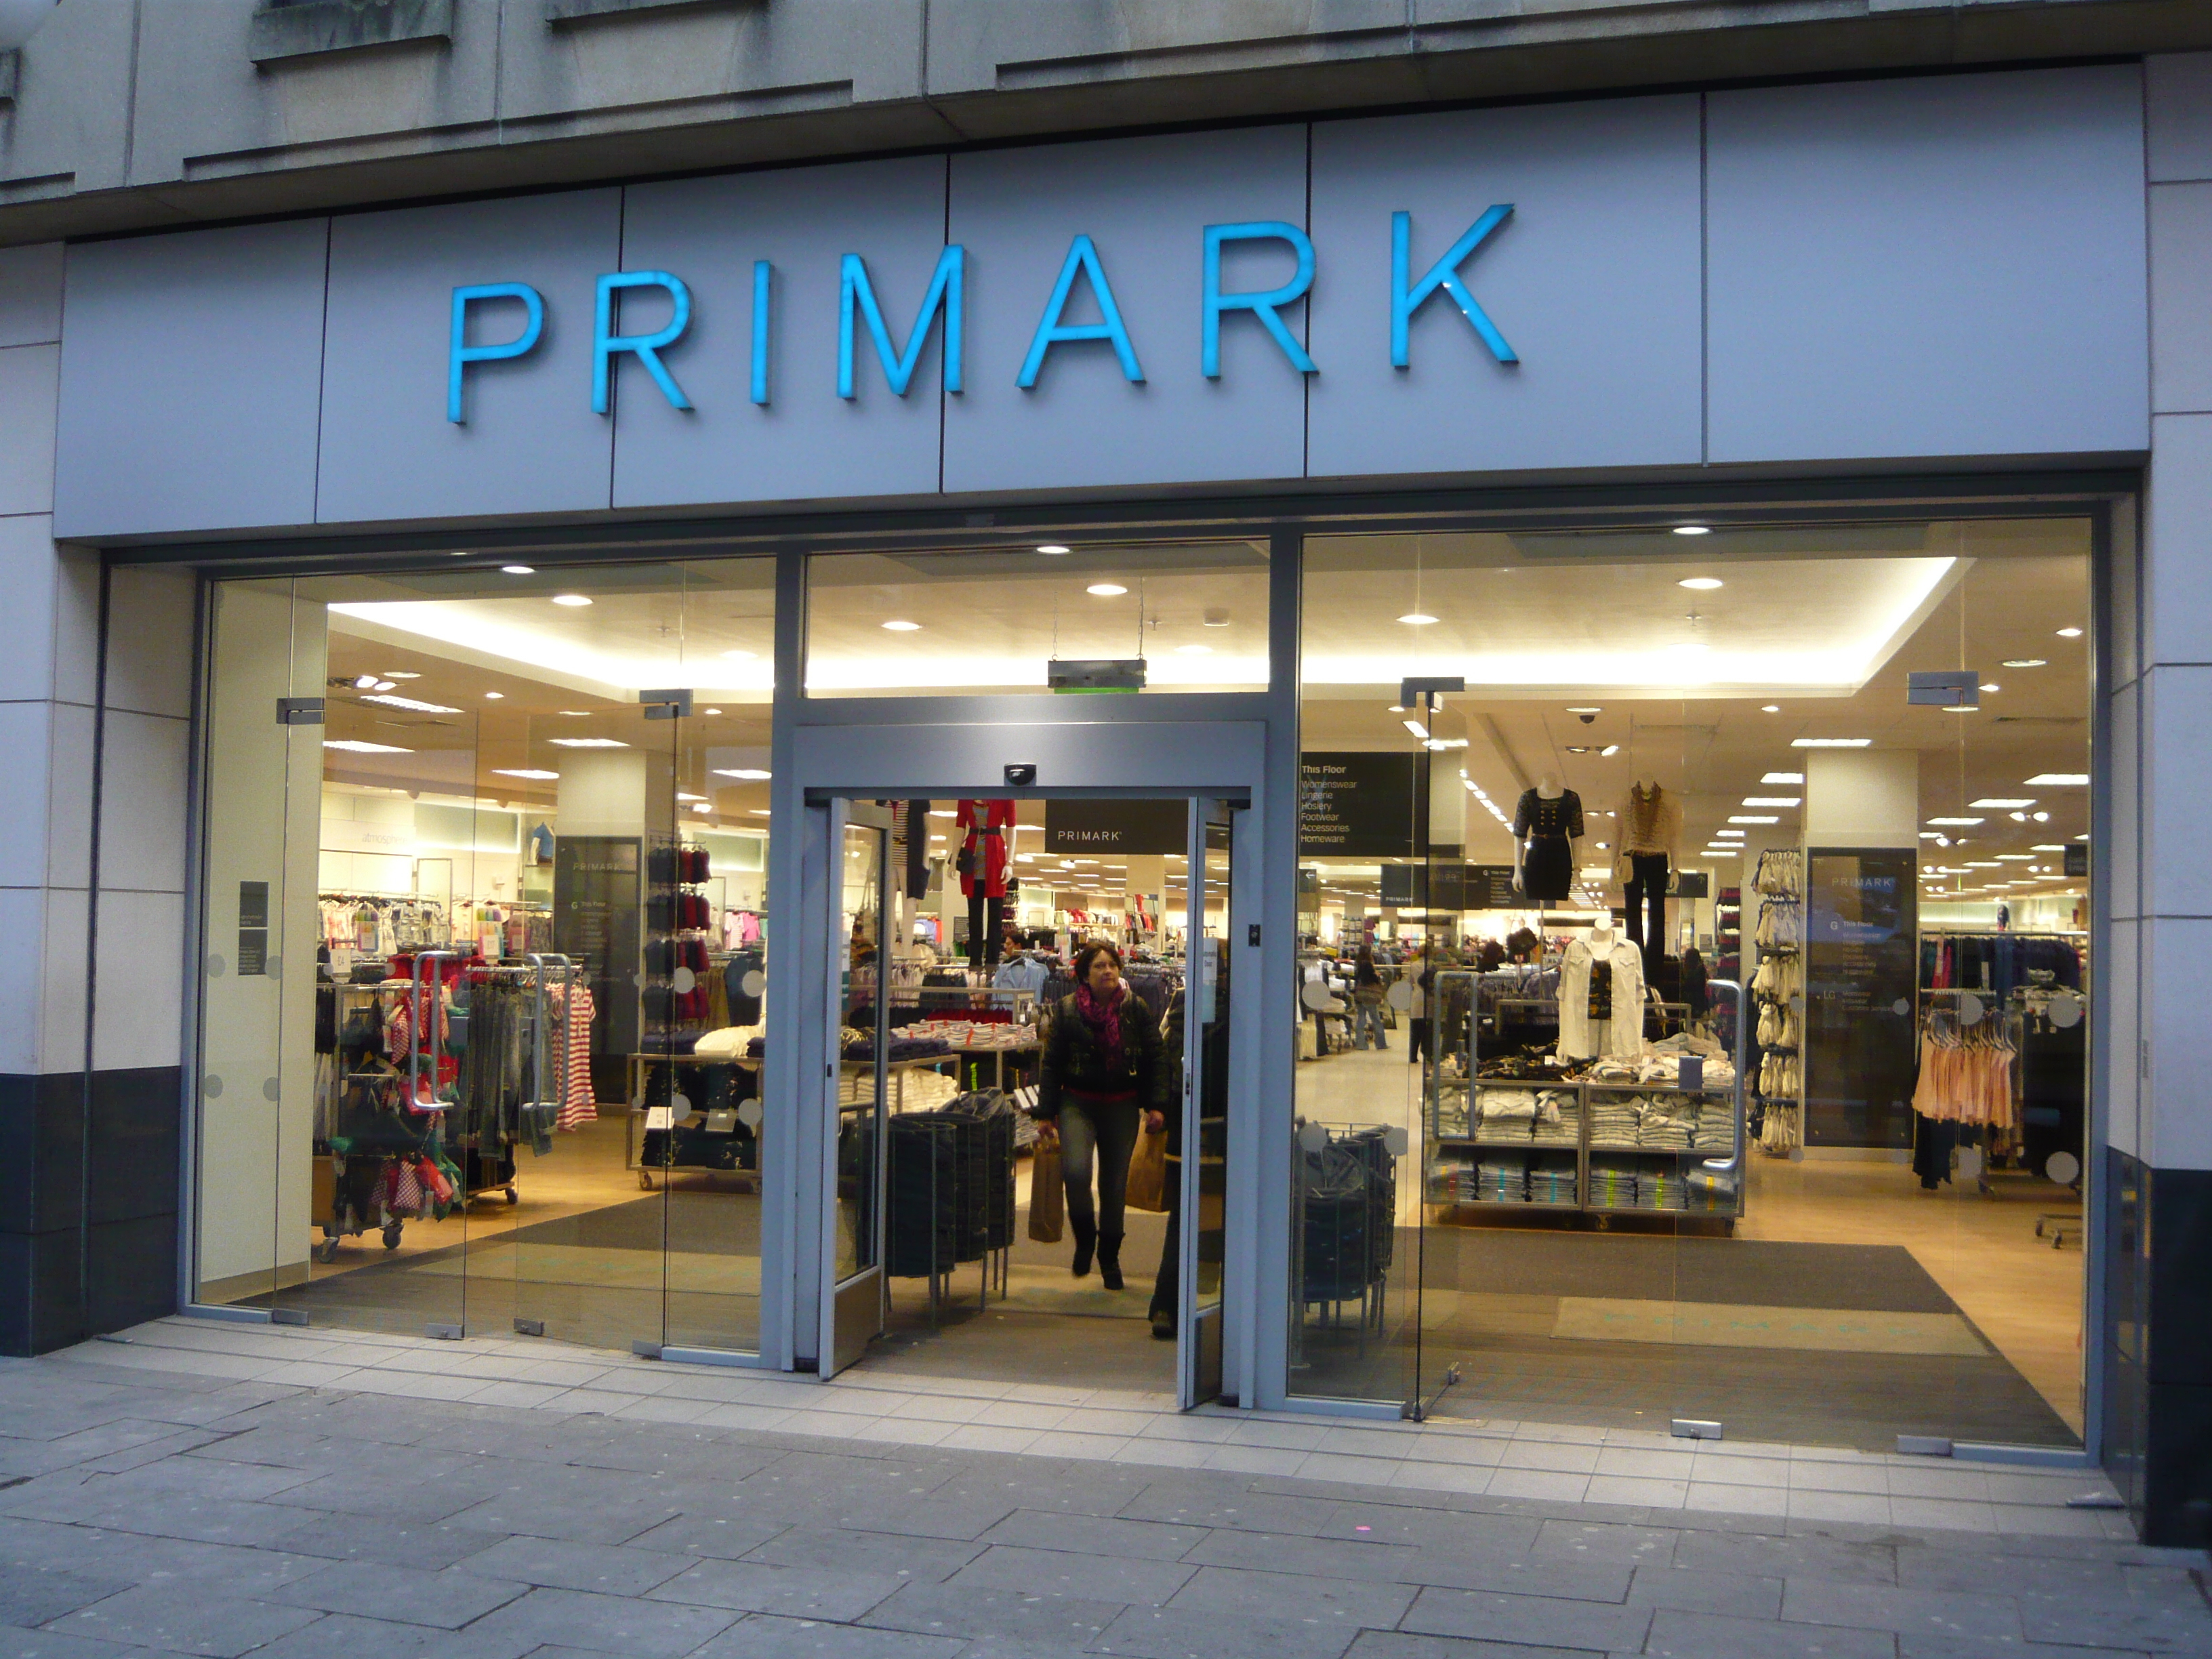 marketing in primark Risk analysis of primark essay primark corp was emerging as a leader in the global information services industry in the mid-1990s through its four major divisions, the company focused its information services on financial, weather, and information technology markets.